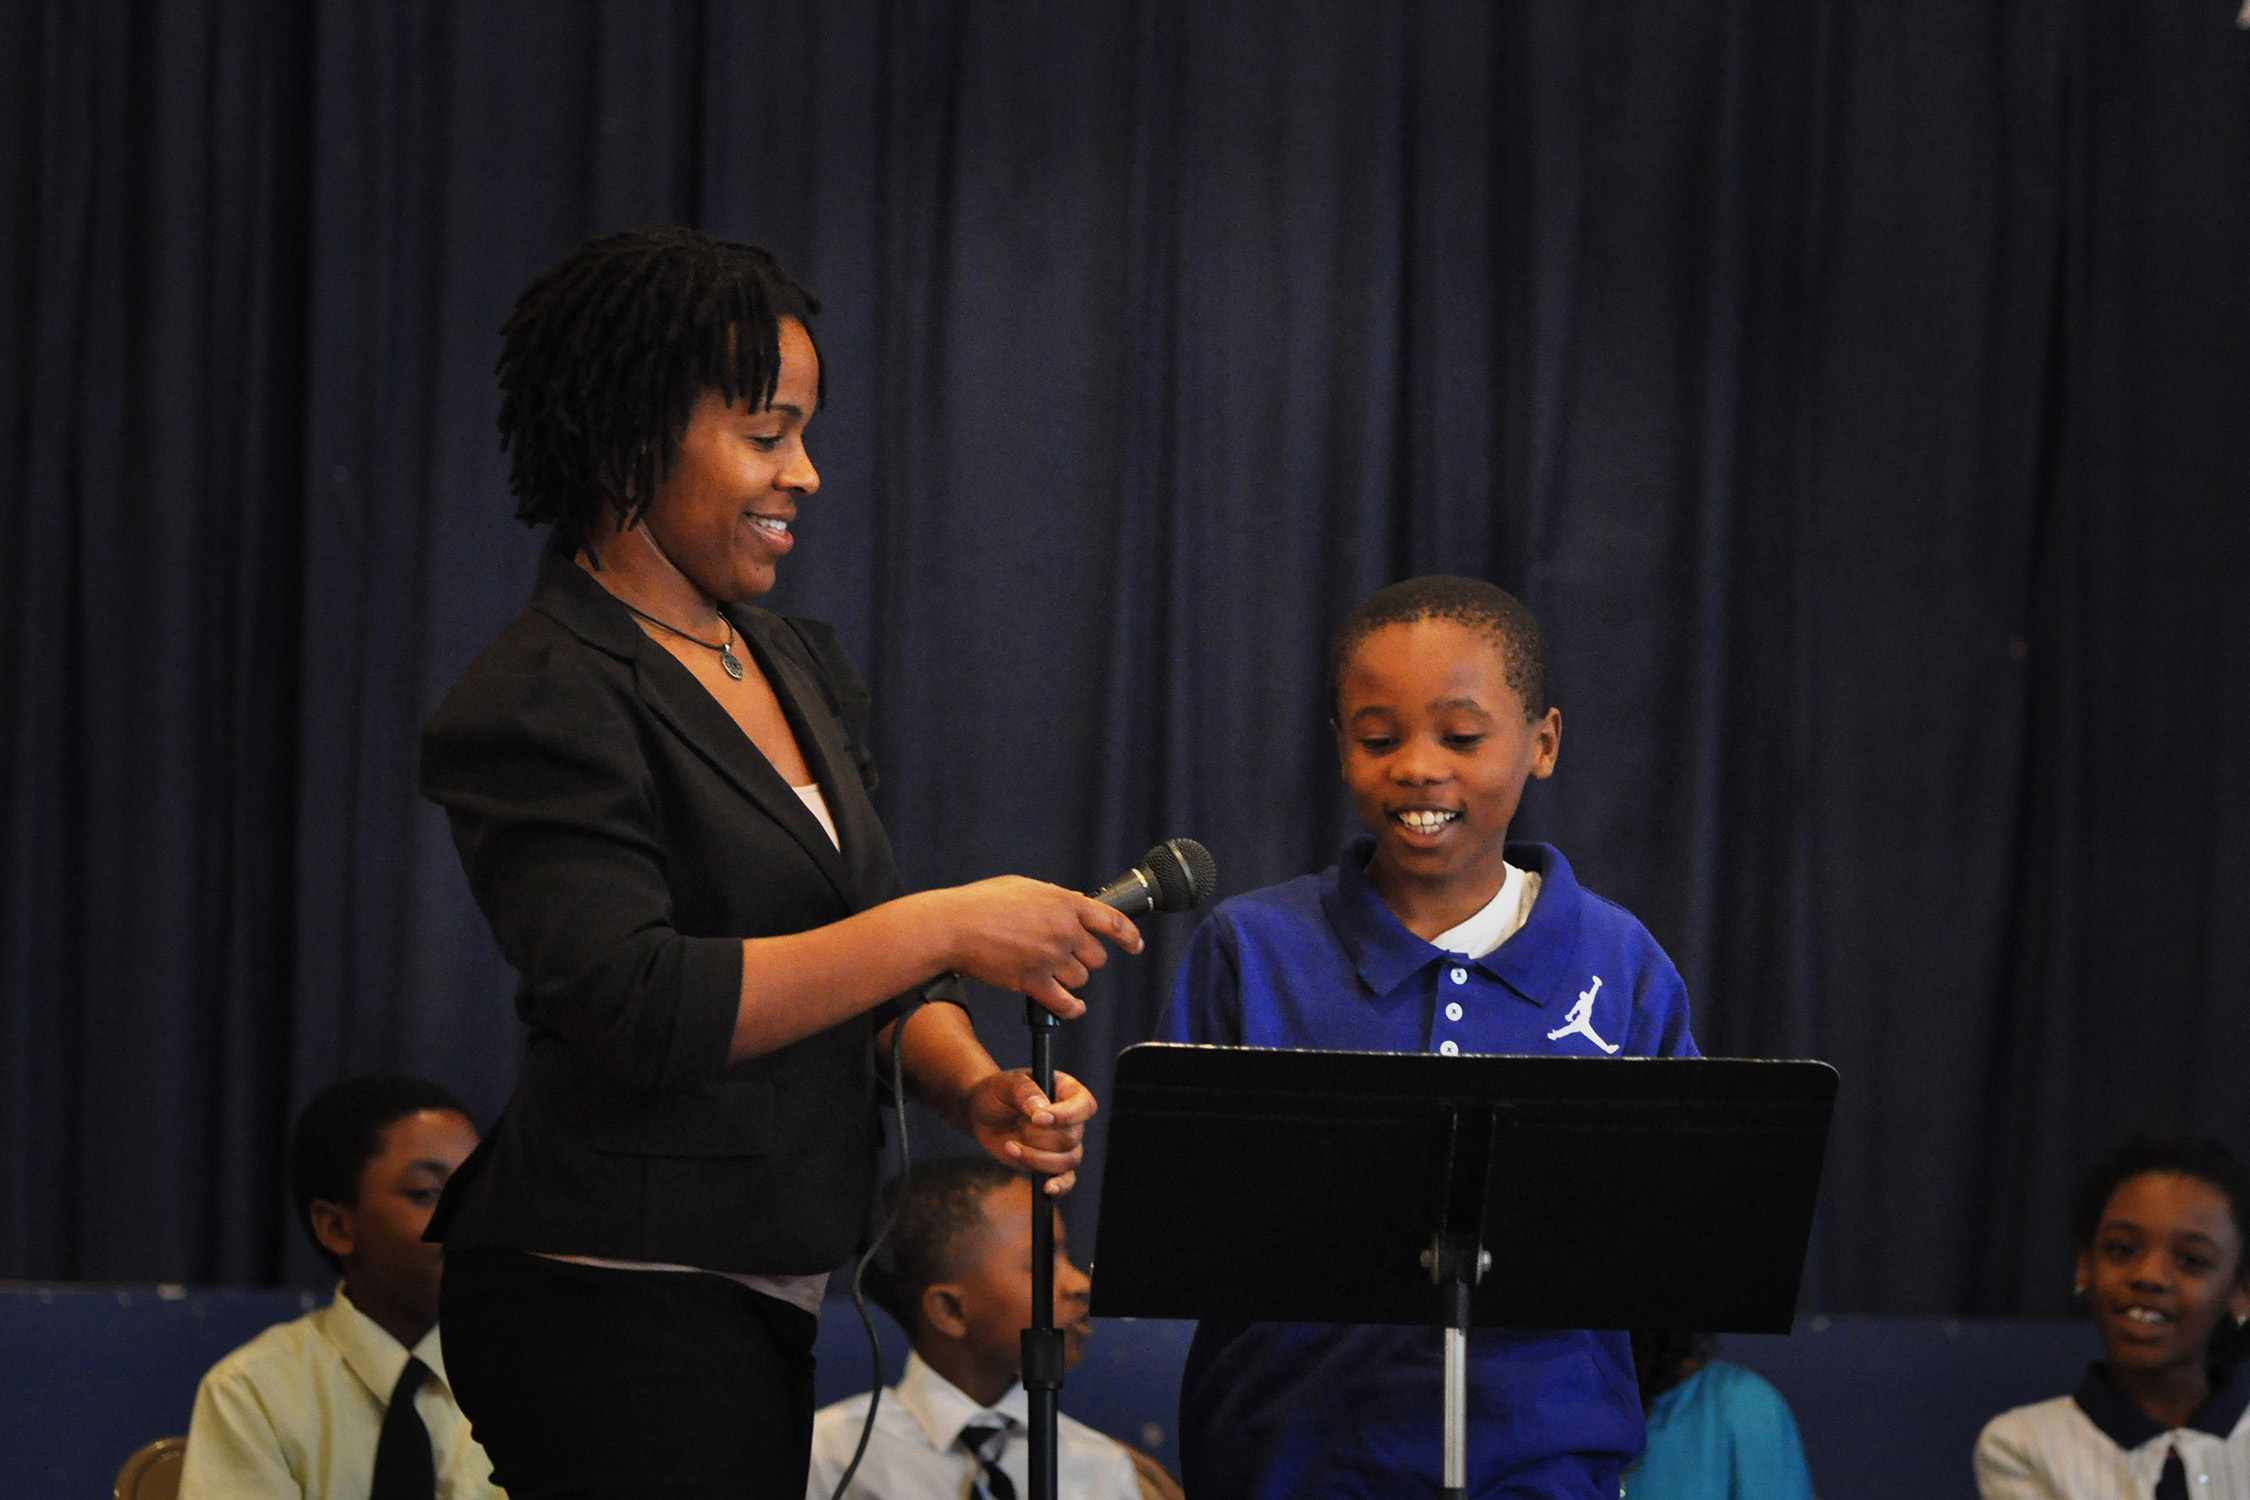 A teacher adjusts the height of a microphone for a young student to begin speaking.